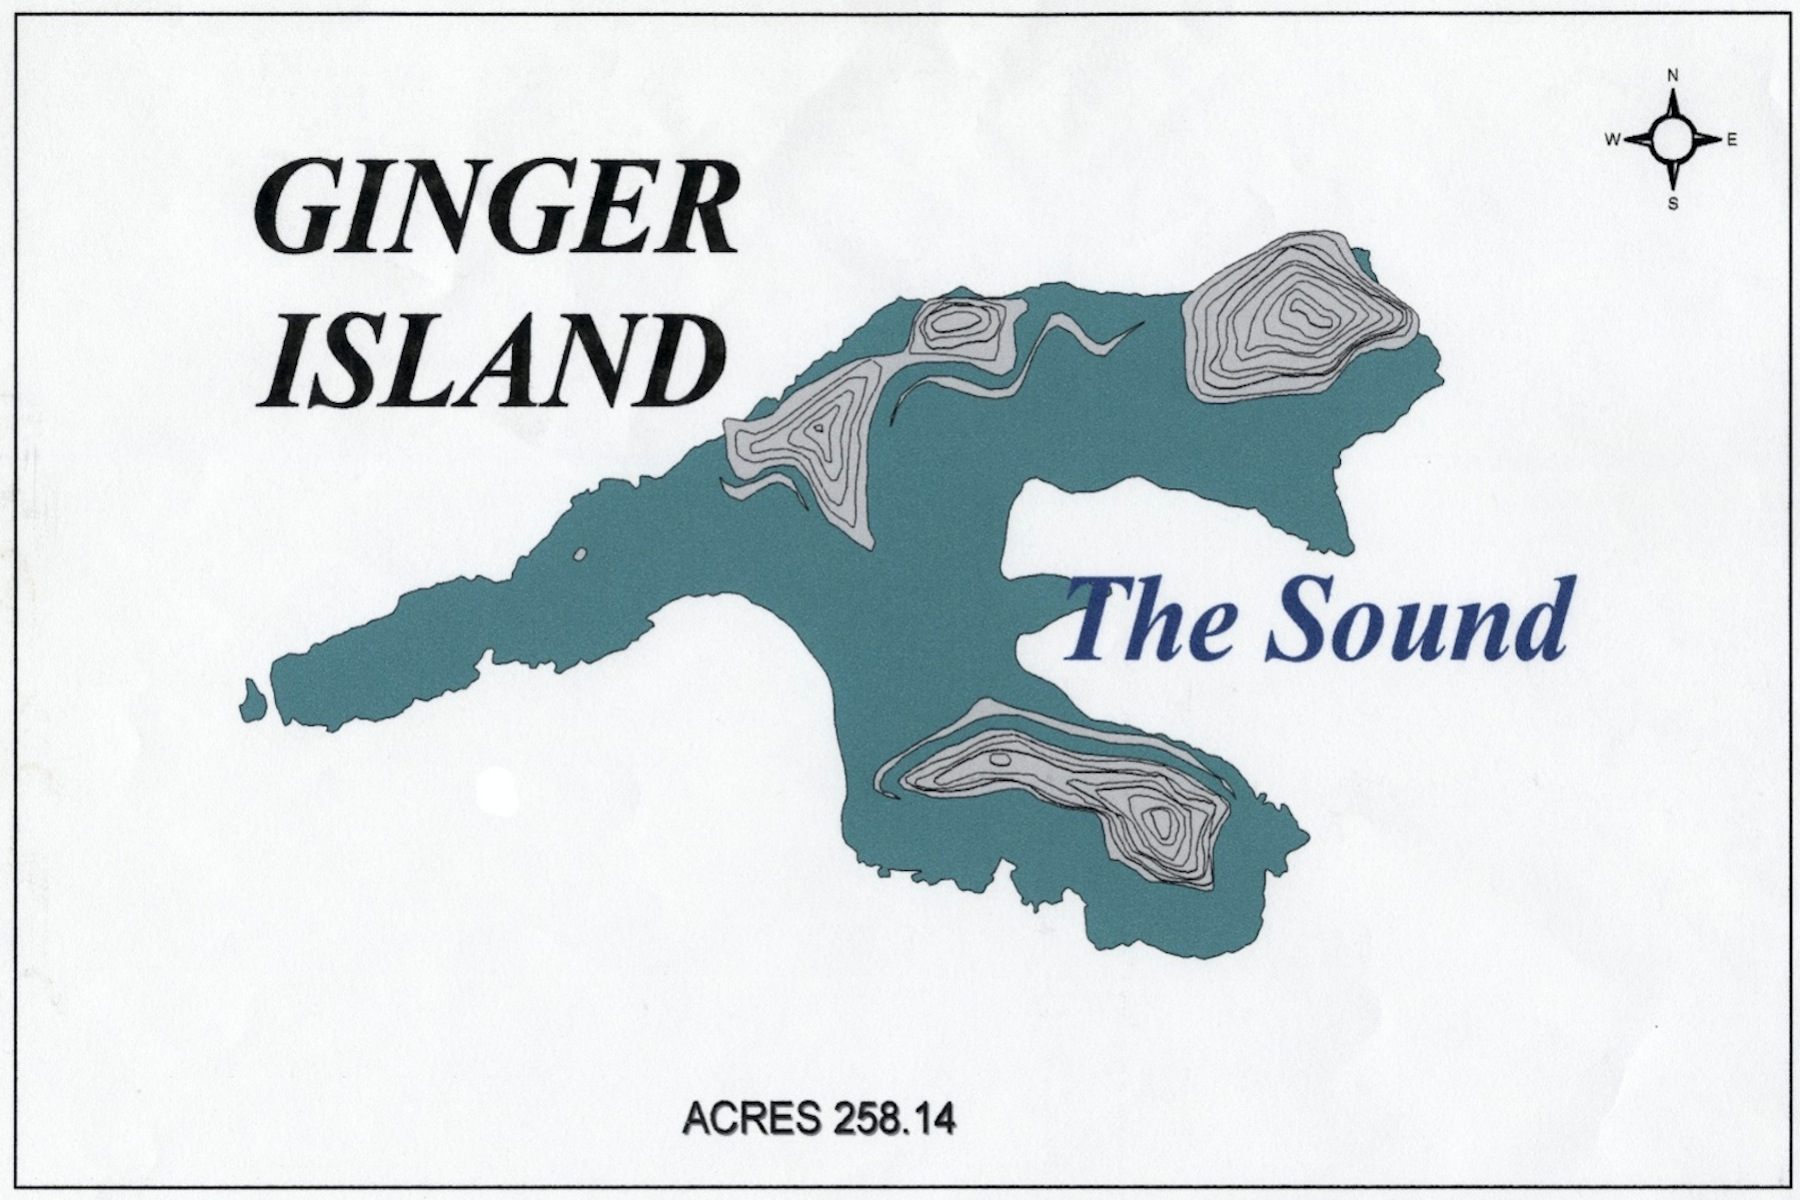 Property Of Ginger Island